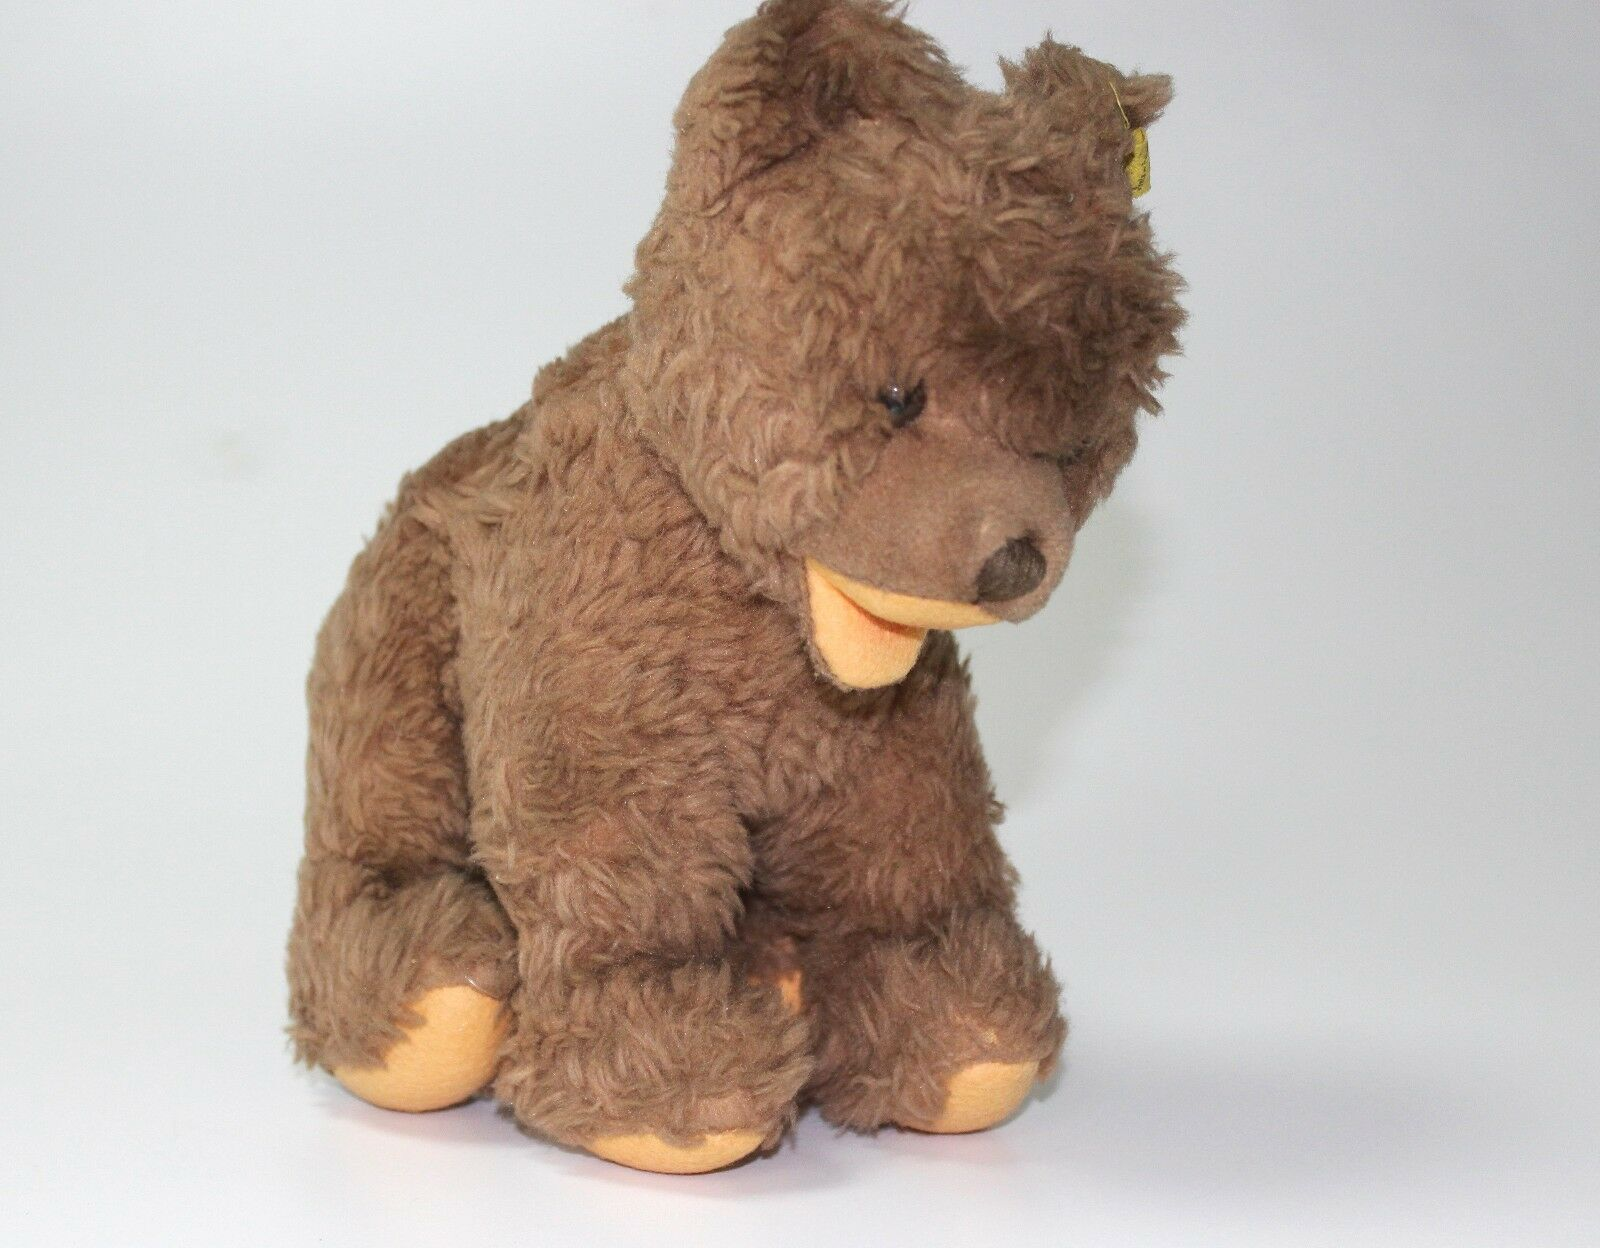 OLD VINTAGE STEIFF TEDDY Marrone BEAR PLUSH TOY GERMAN bianca   BUTTON EAR H 22 CM